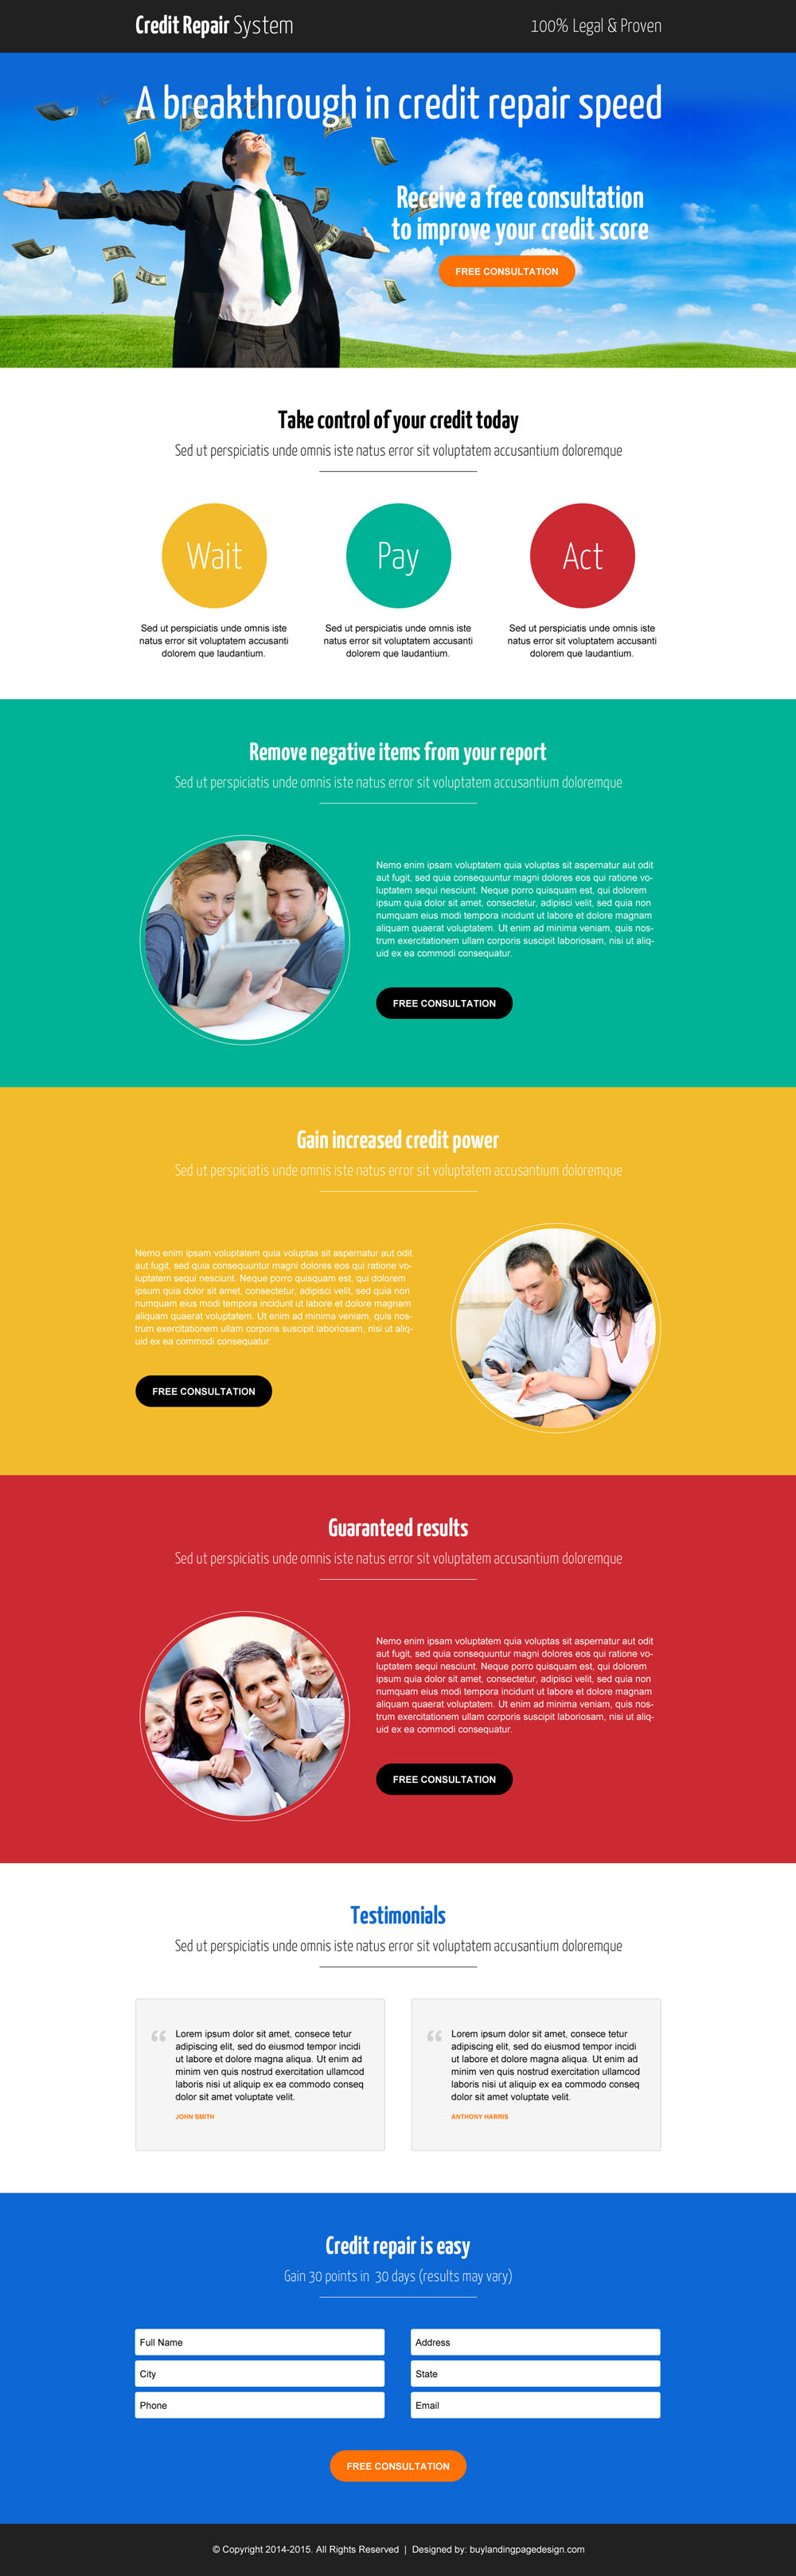 smart-credit-repair-consultation-service-cta-and-lead-capture-landing-page-design-023